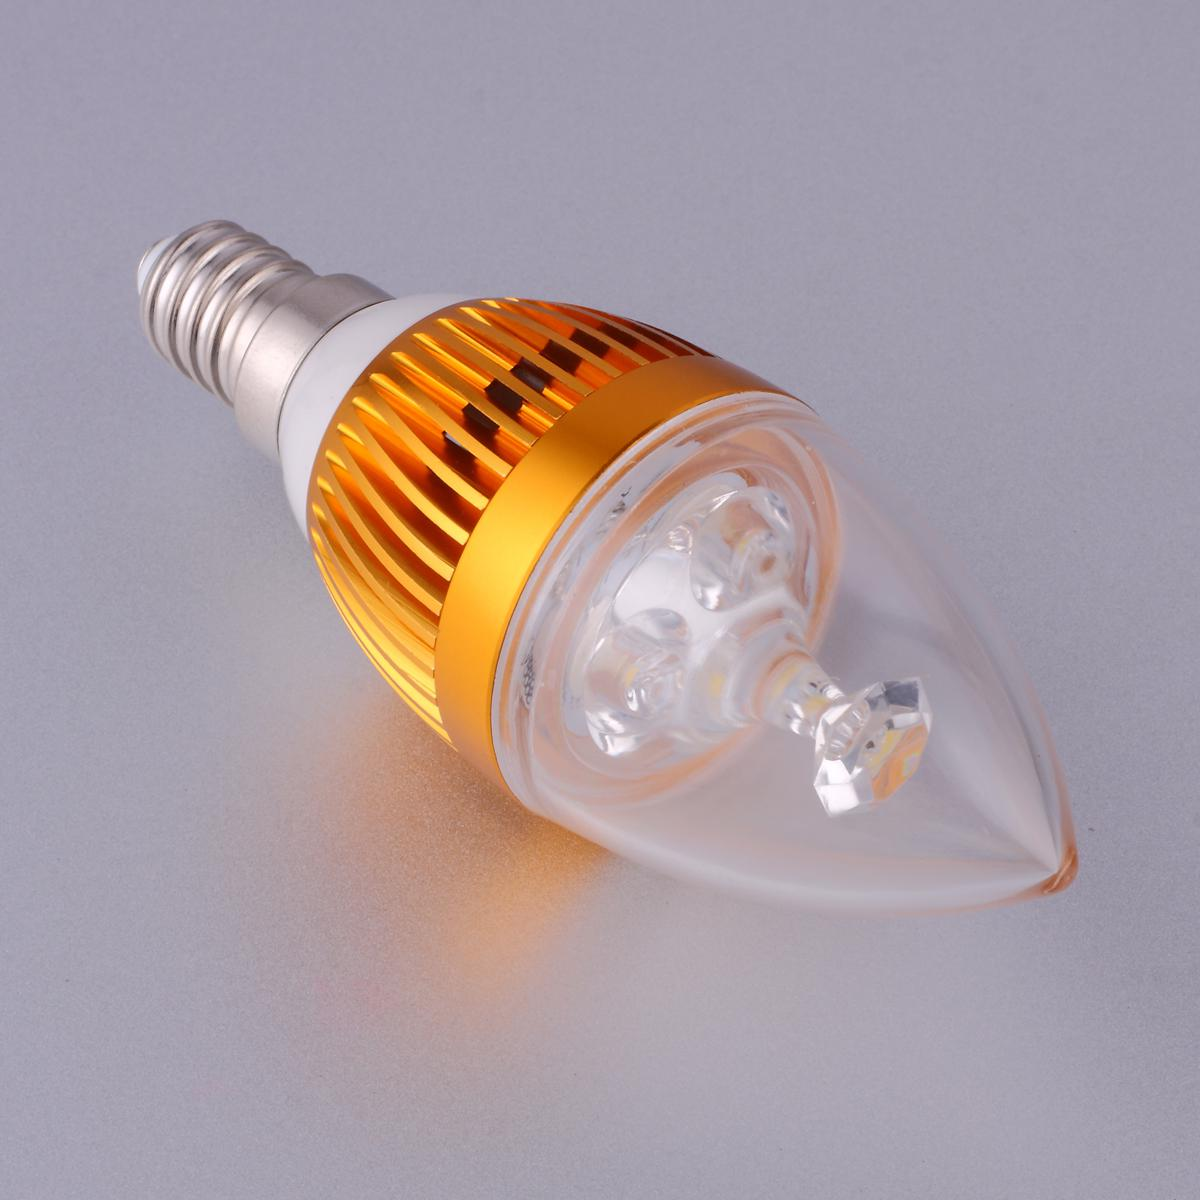 led chandelier light bulbs. LED Bulb Candle Light The Chandelier 3W Energy-saving Lamps Decorative Lights Pointed Led Bulbs U